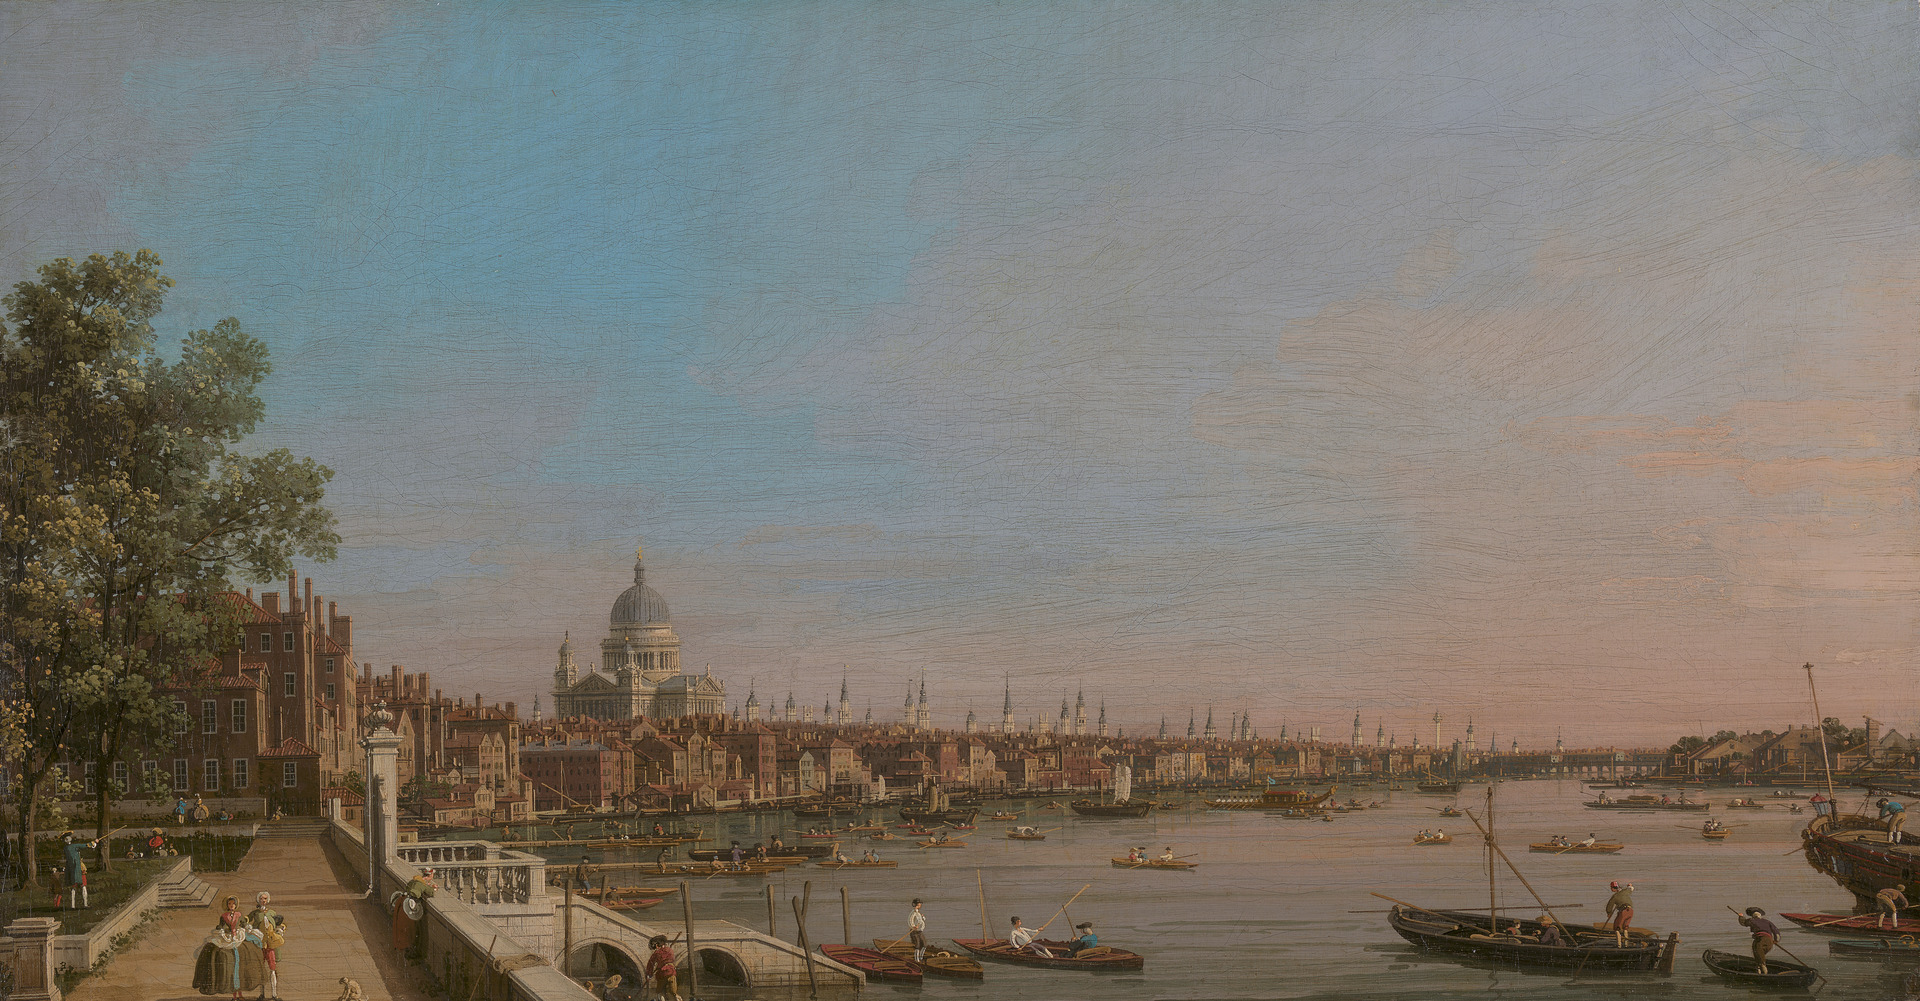 Canaletto, 1697–1768, Venetian, active in Britain (1746–55),  The City from Near the Terrace of Somerset House , ca. 1750, Oil on canvas, Yale Center for British Art, Paul Mellon Collection.